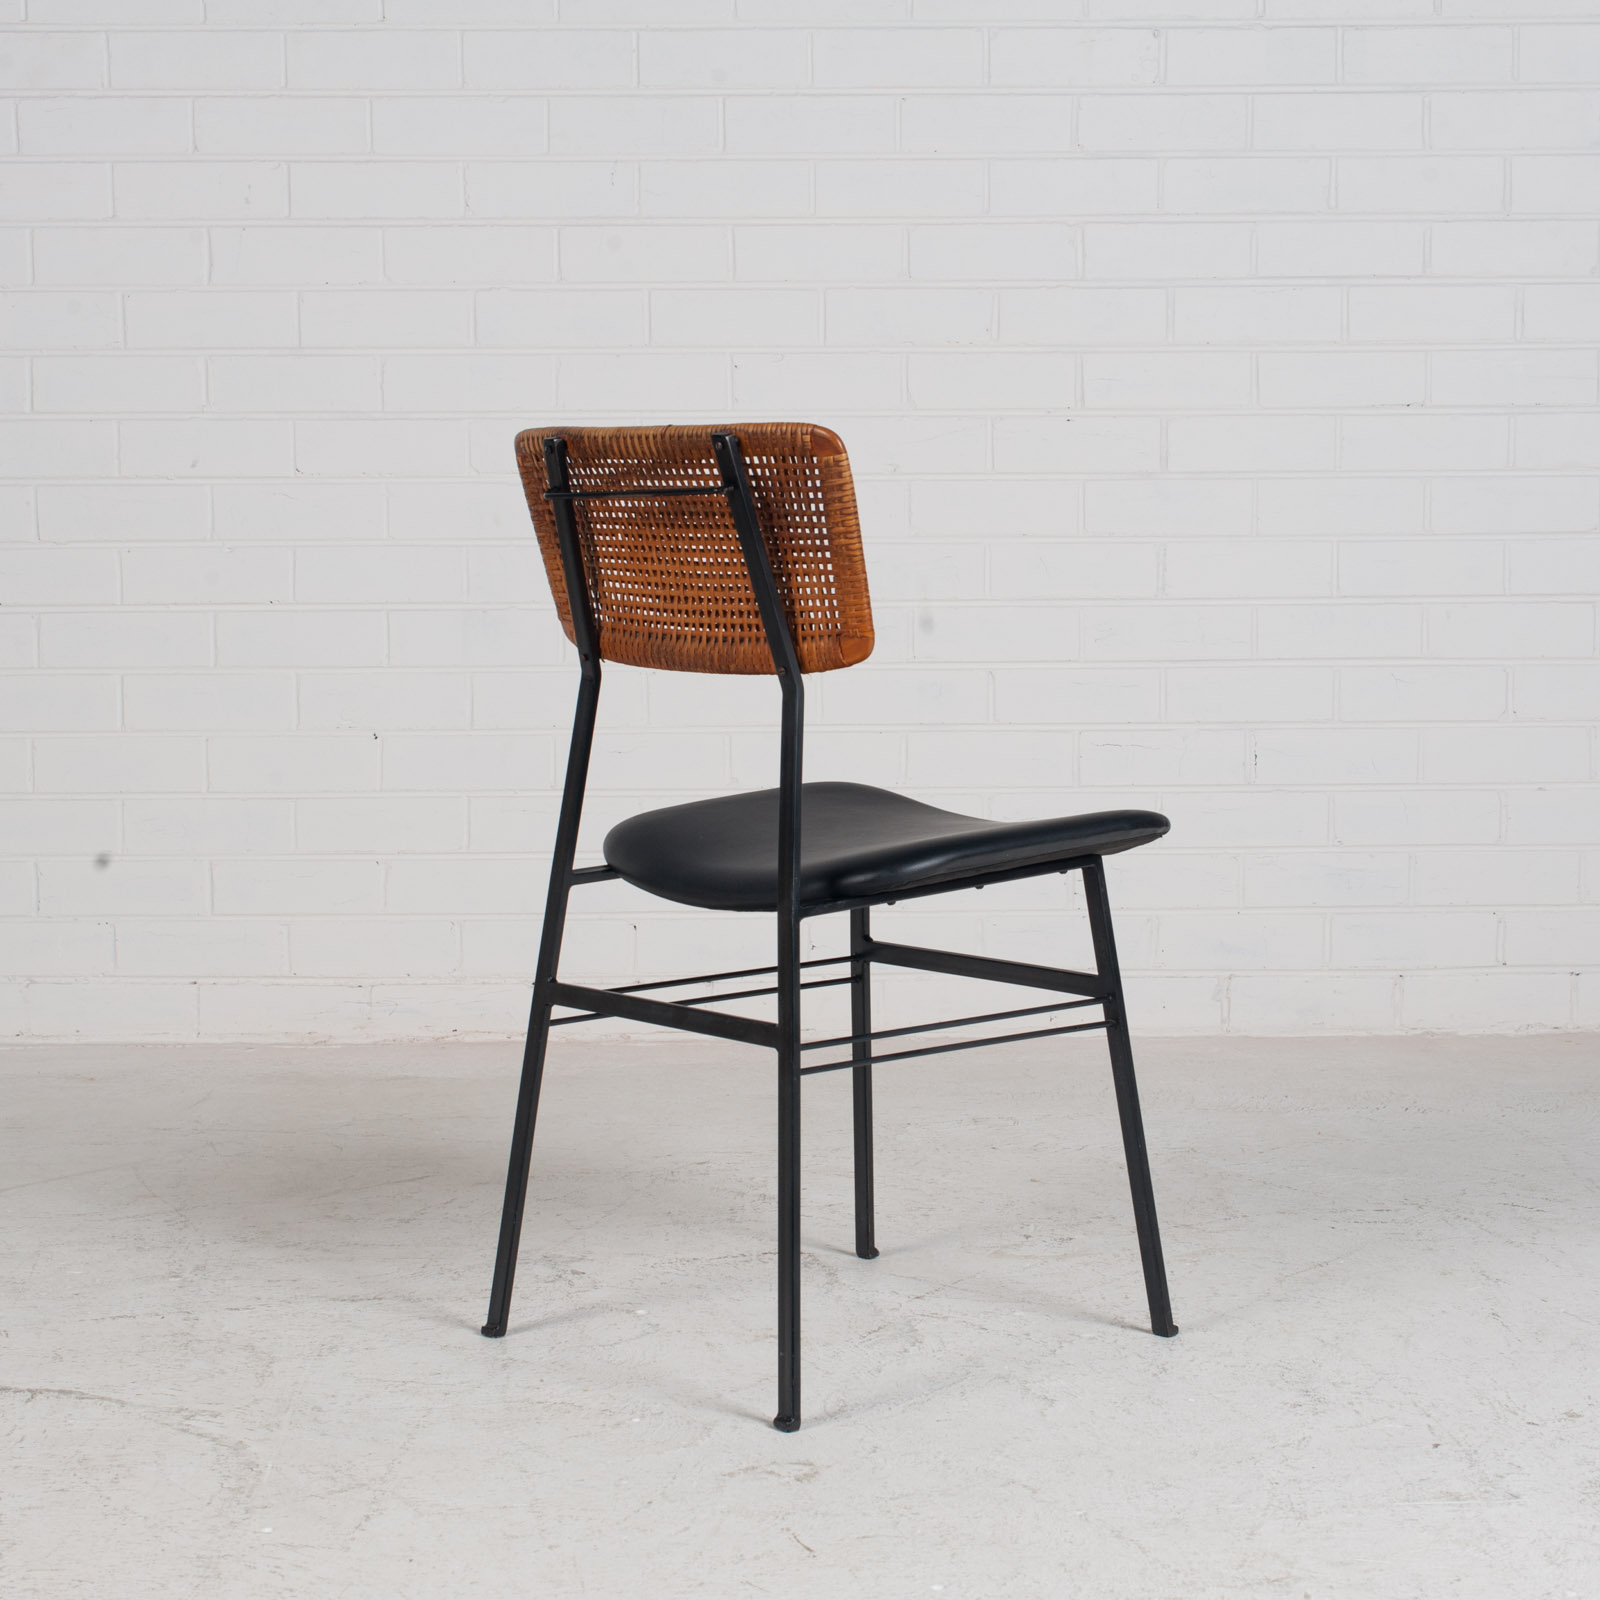 Set Of 4 Dining Chairs By Rohe In Rattan And Original Vinyl 1960s Denmark 03